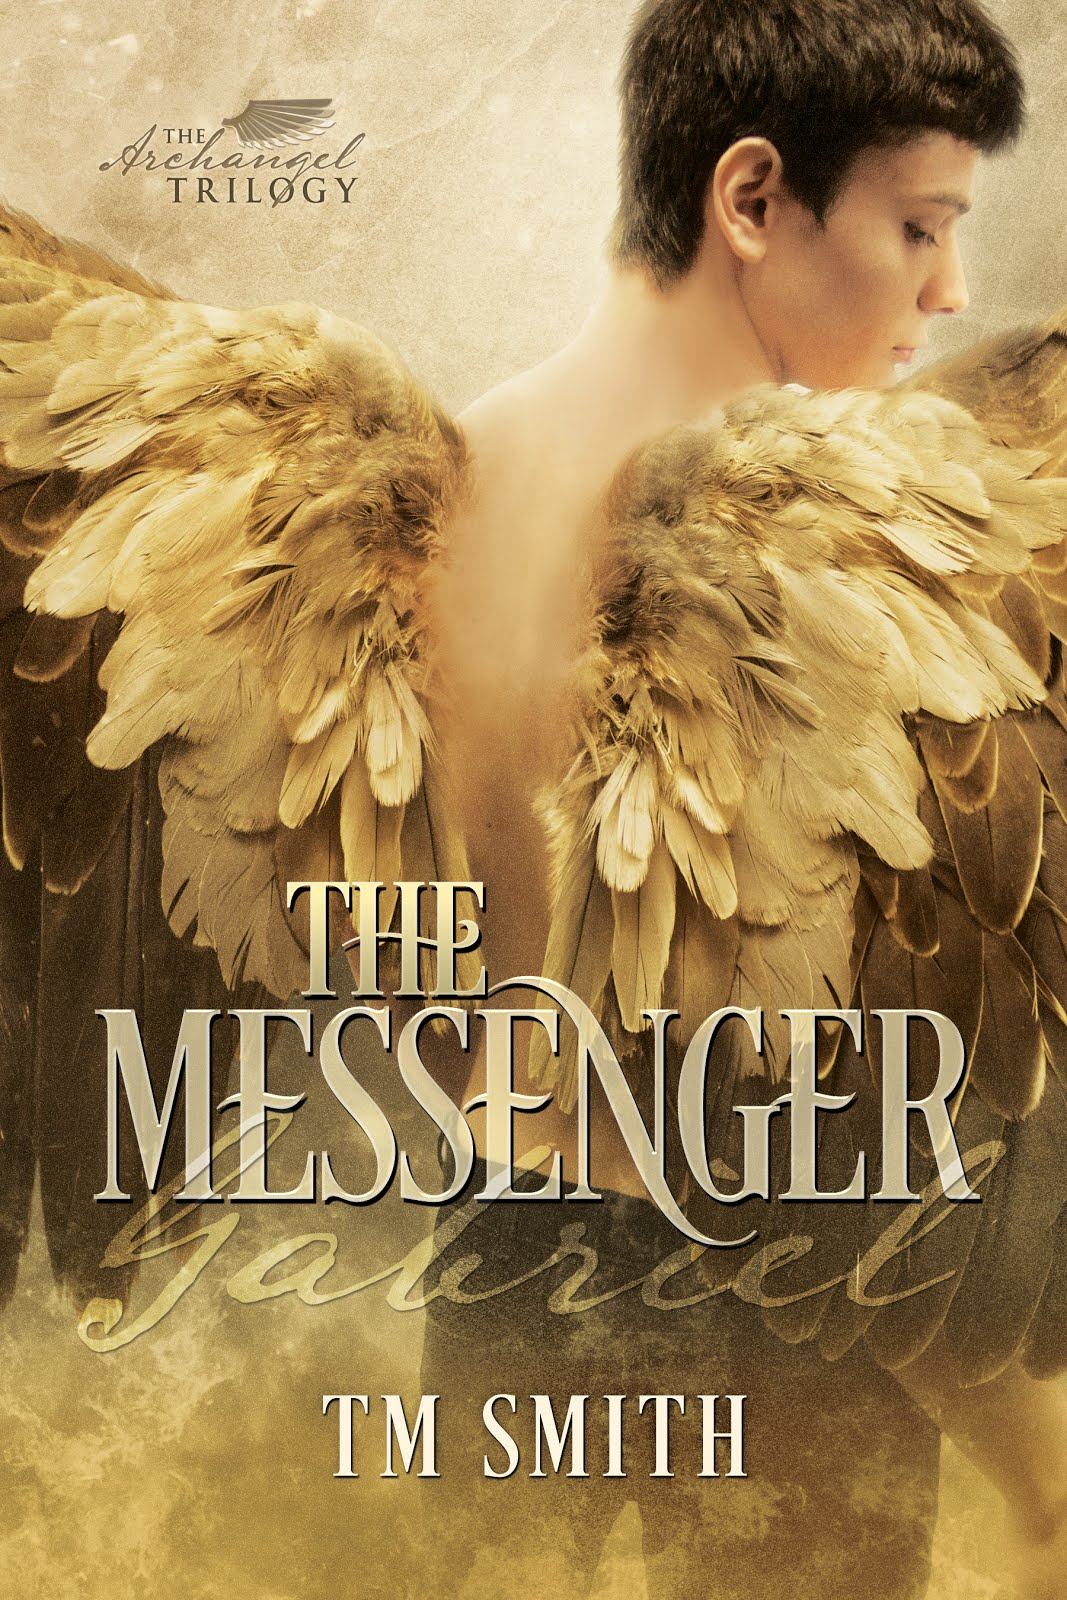 The Messenger. FREE for KU subscribers.